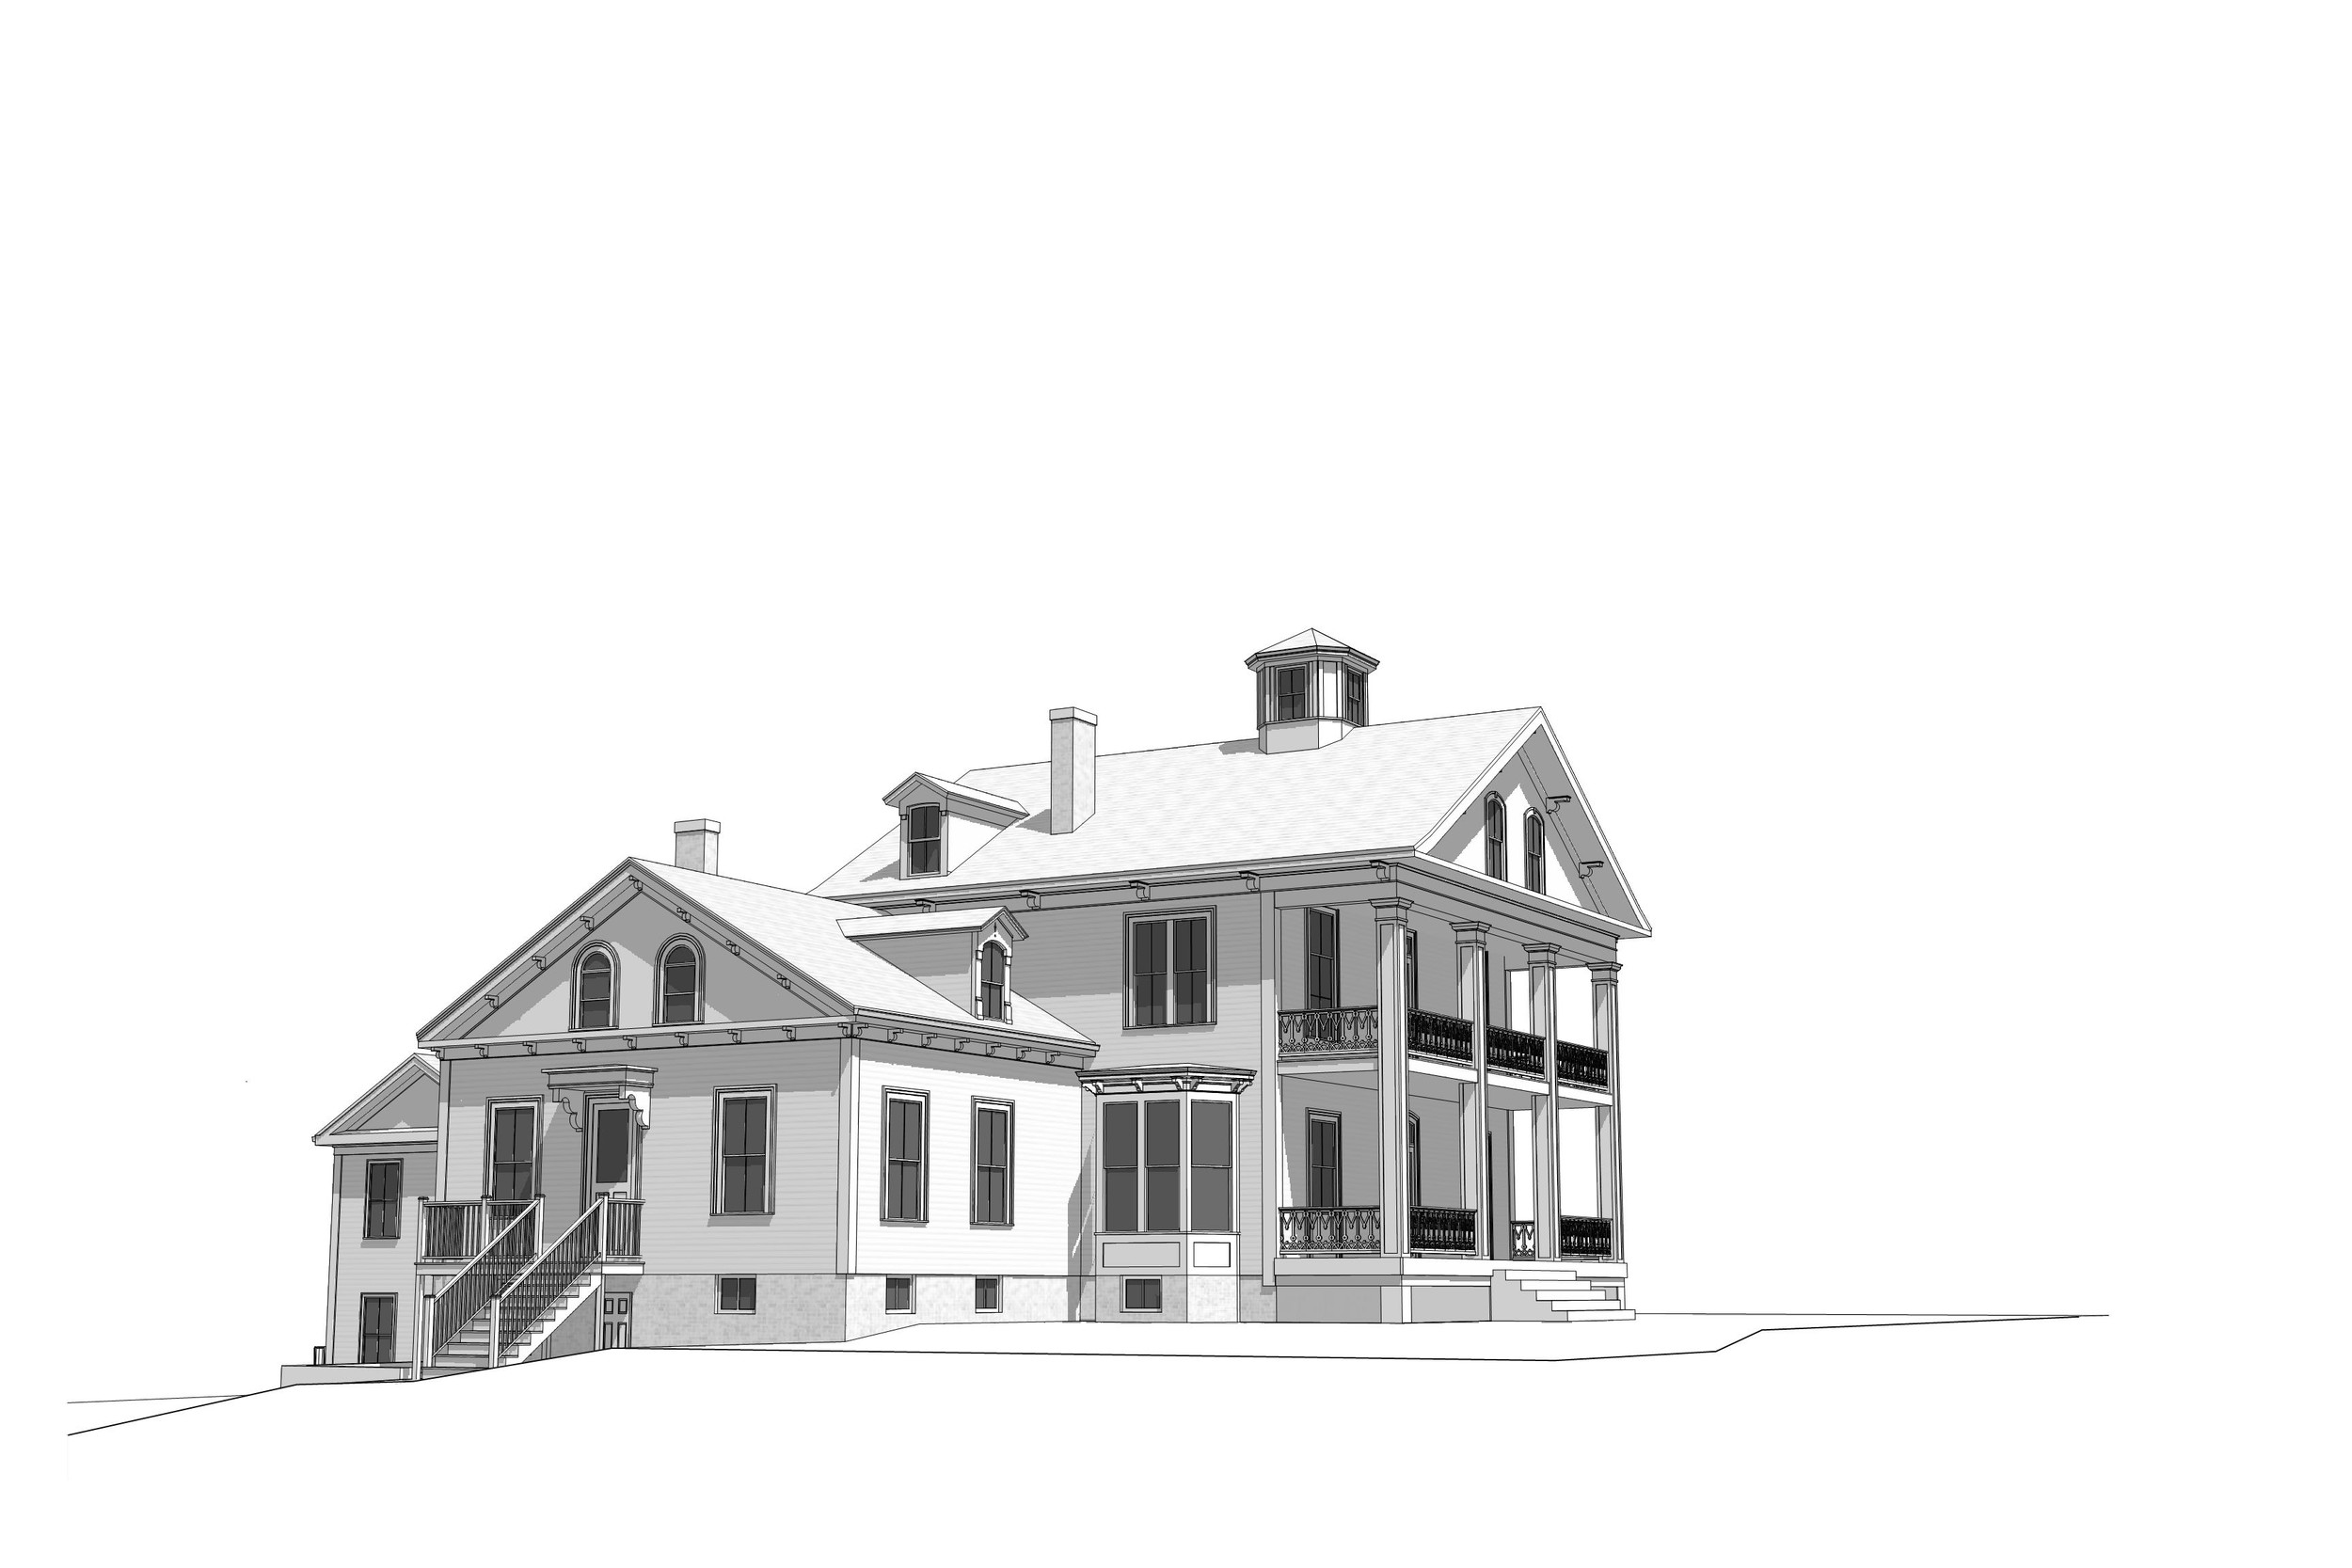 STANDING TALL: An architect's rendering of the house has it standing straight and tall as it once did. The House of Hope is considering having the rendering made into a sign so area residents can see what's planned.